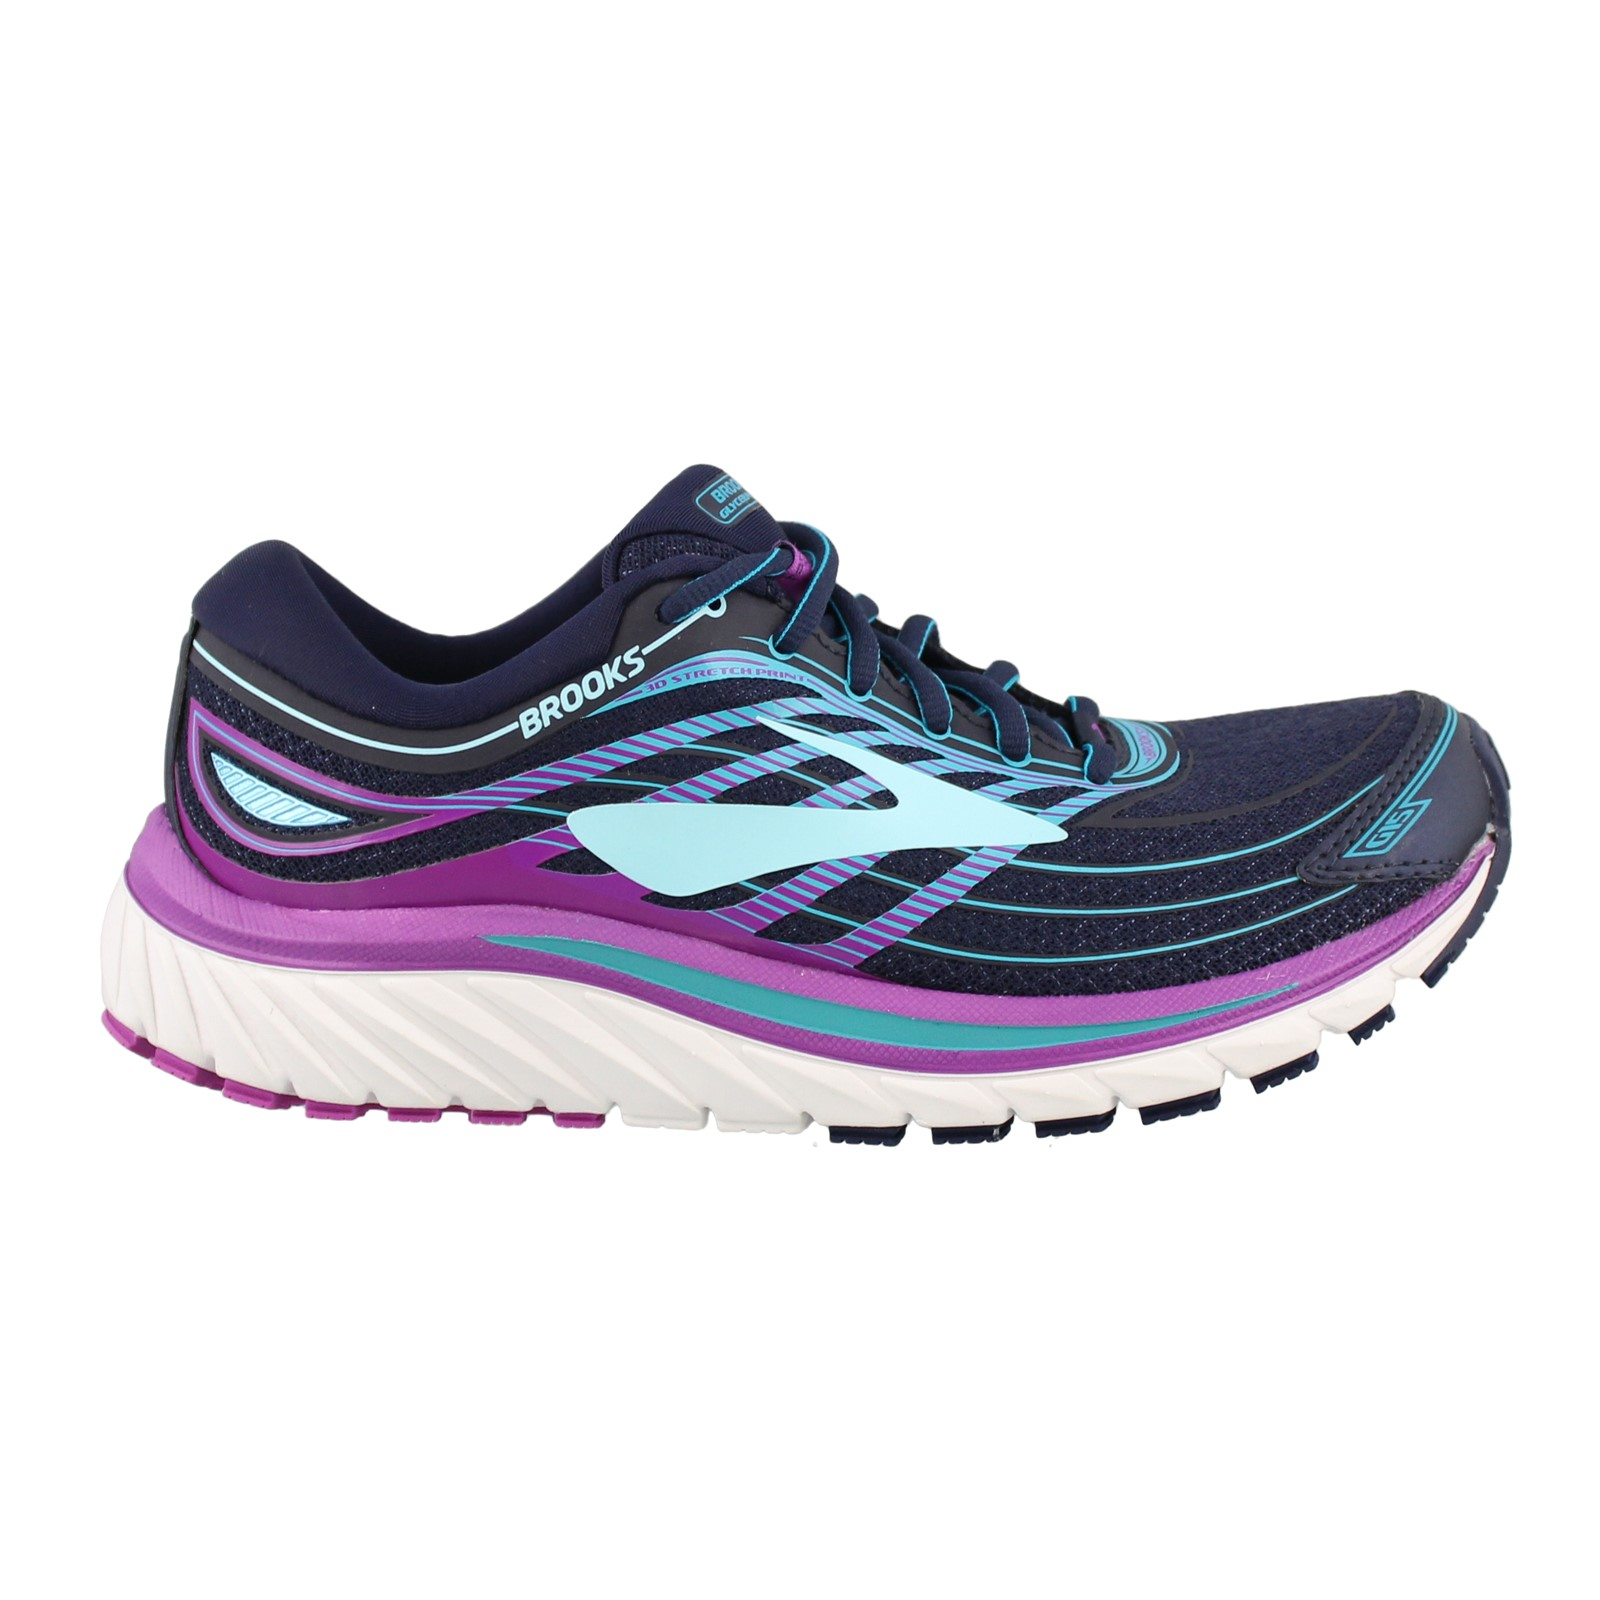 Women's Brooks, Glycerin 15 Running Sneakers